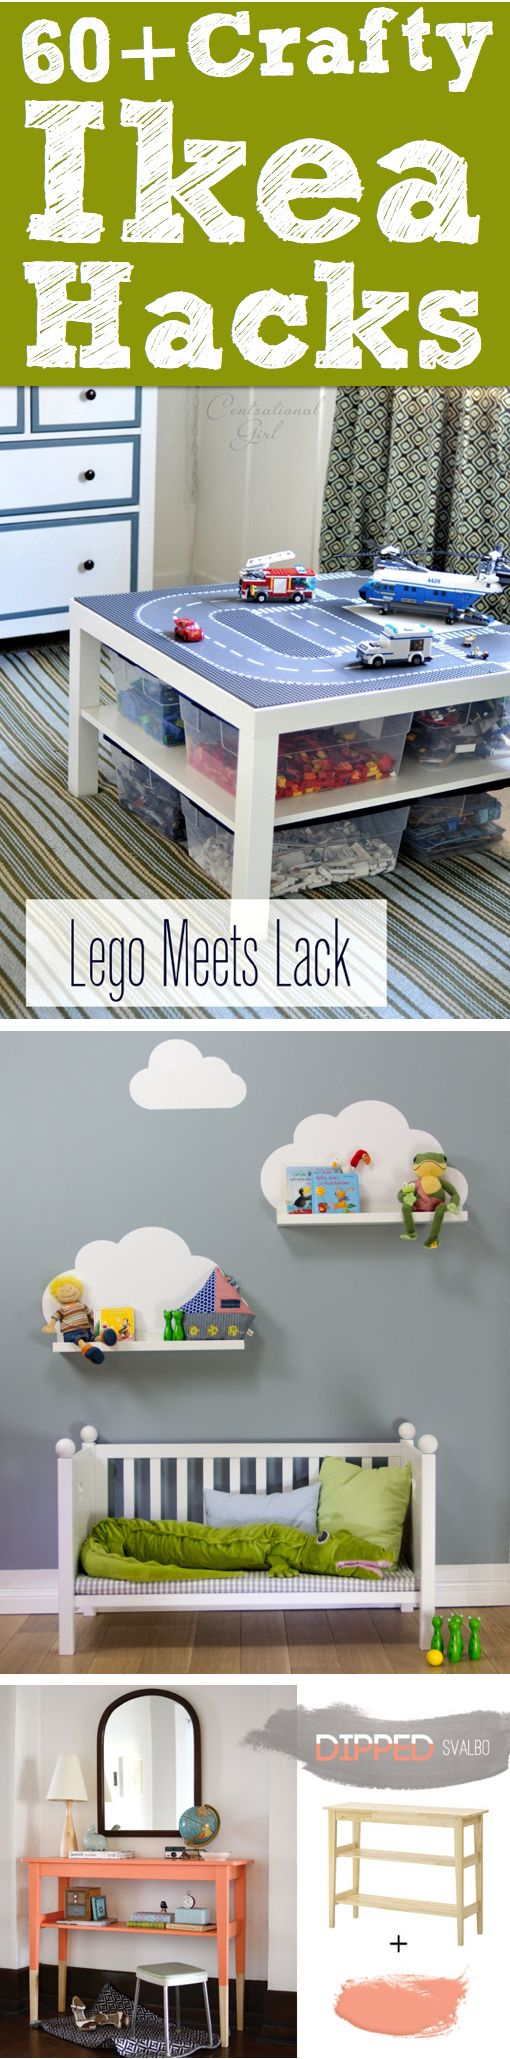 60+ Crafty Ikea Hacks To Help You Save Time And Money! - Great ideas to turn plain furniture into great ones. Look here for some ideas!